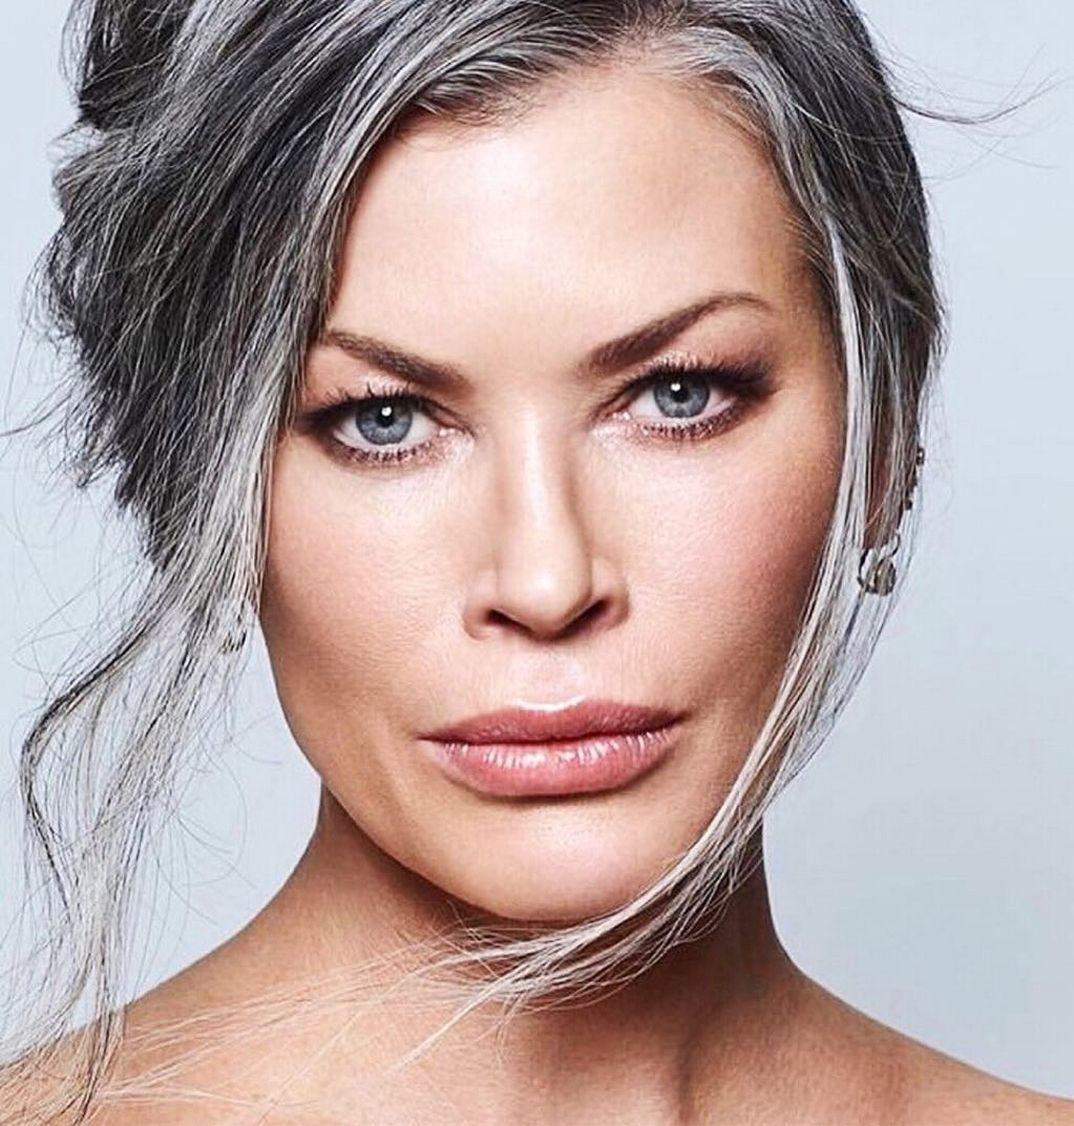 53 Ideas Look Makeup Over 50 in 2020 Grey hair